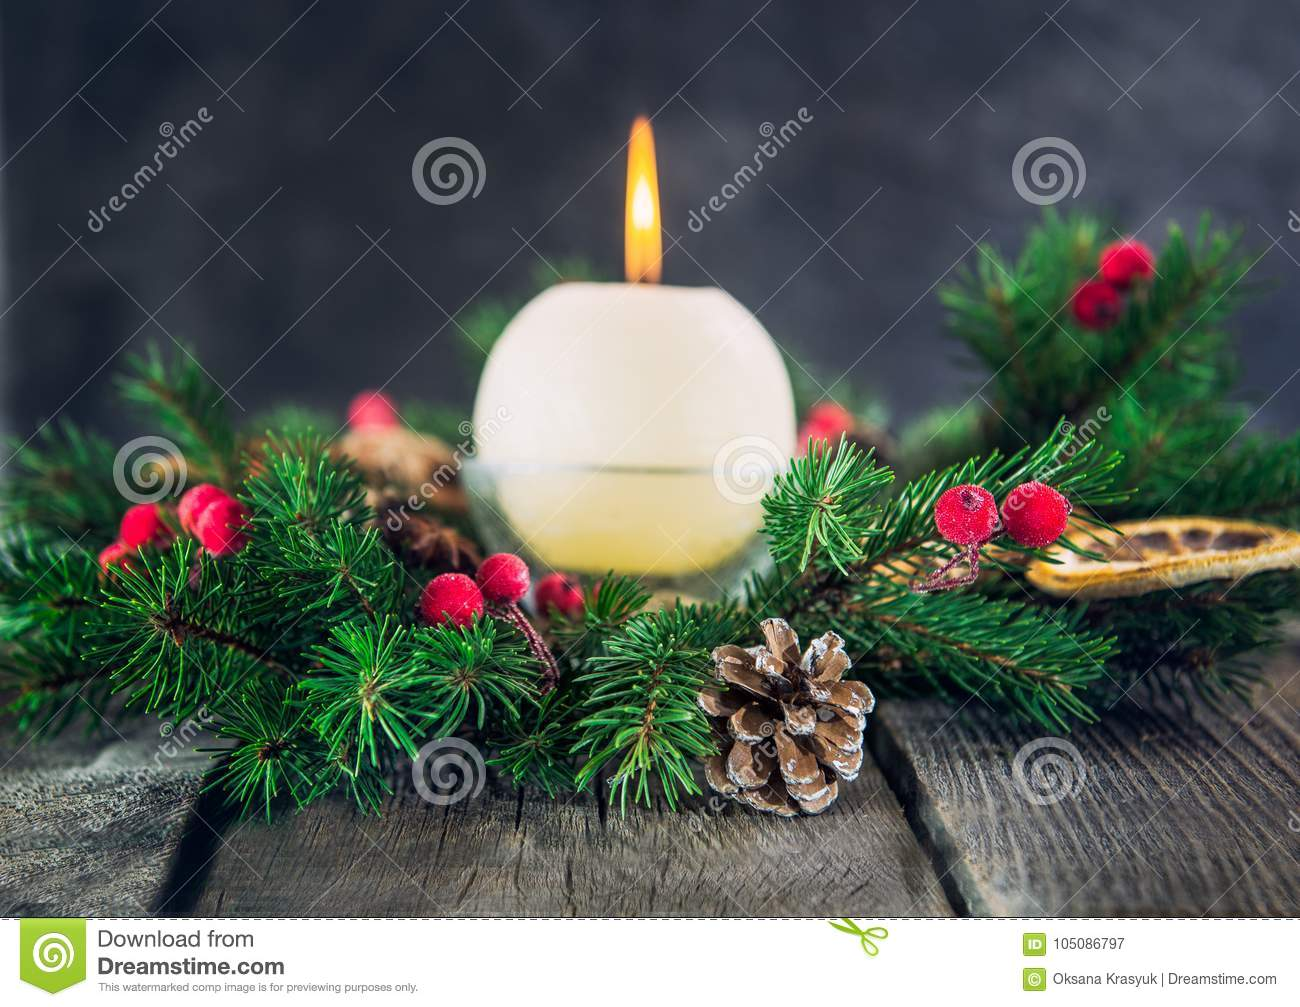 Cristmas card with focused fir cone and branches of advent wreath with natural decor and blurred burning candle on the old rustic